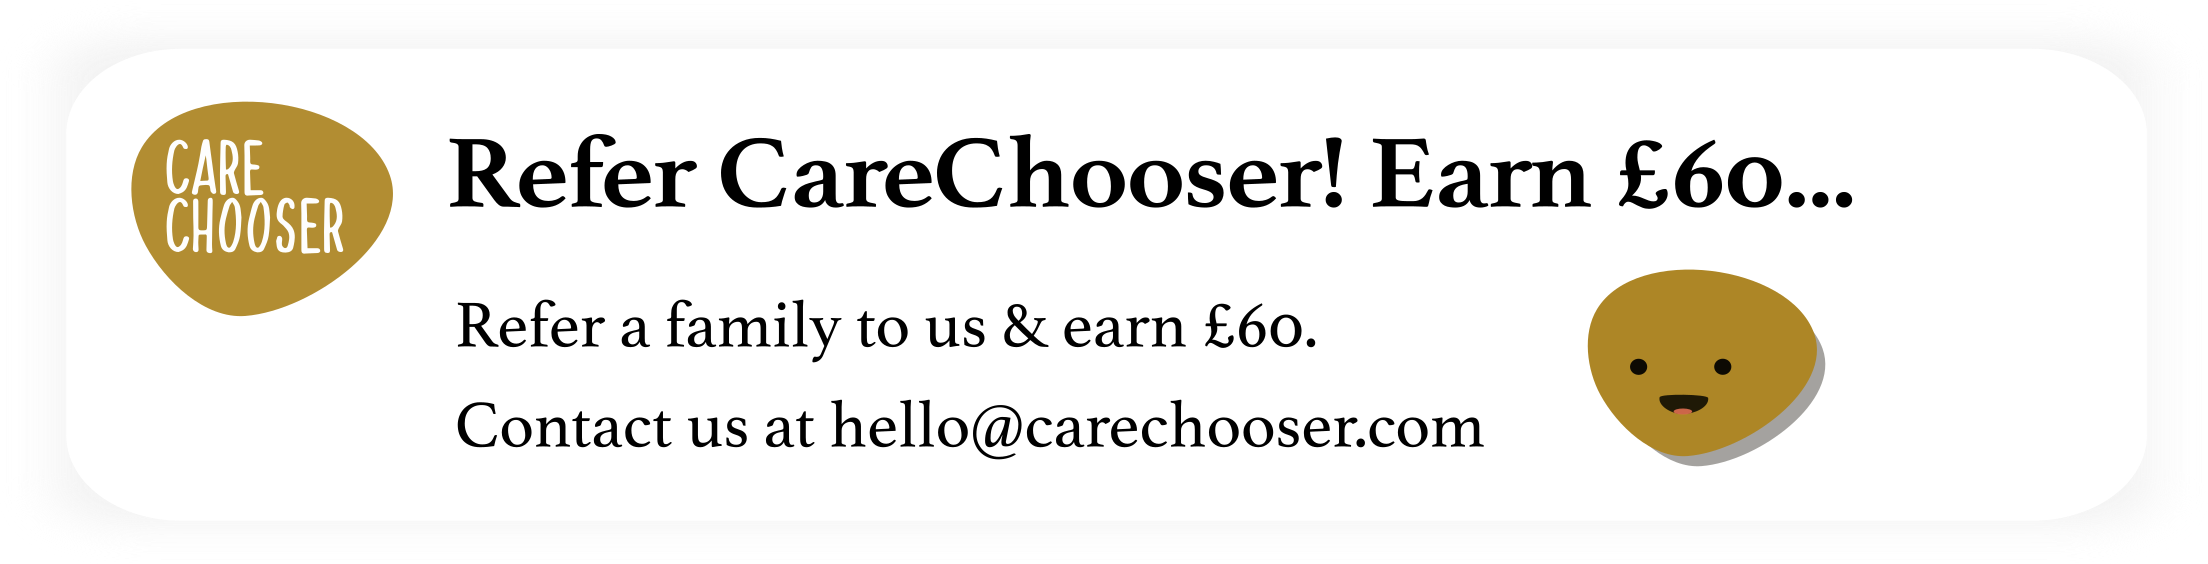 Private care referral - CareChooser referal.png